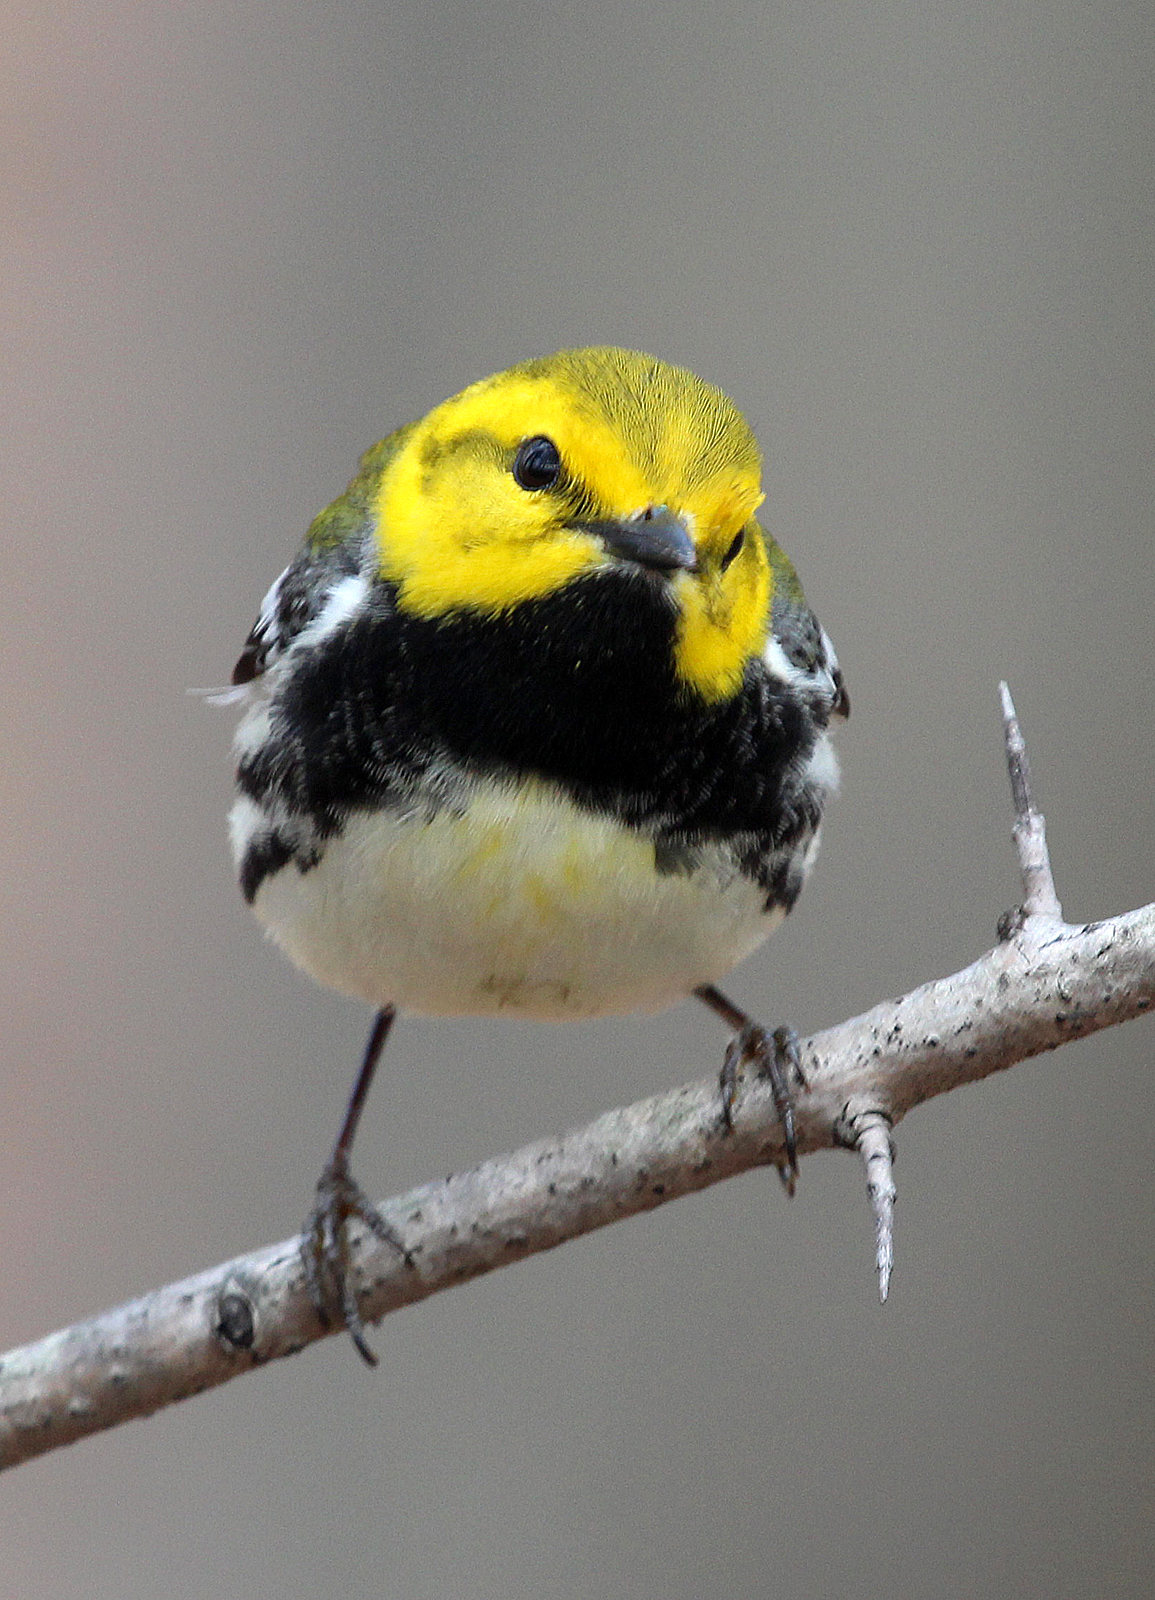 Photo by Chris Bosak A Black-throated Green Warbler perches in a tree at Selleck's/Dunlap Woods on Sunday, May 4, 2014.